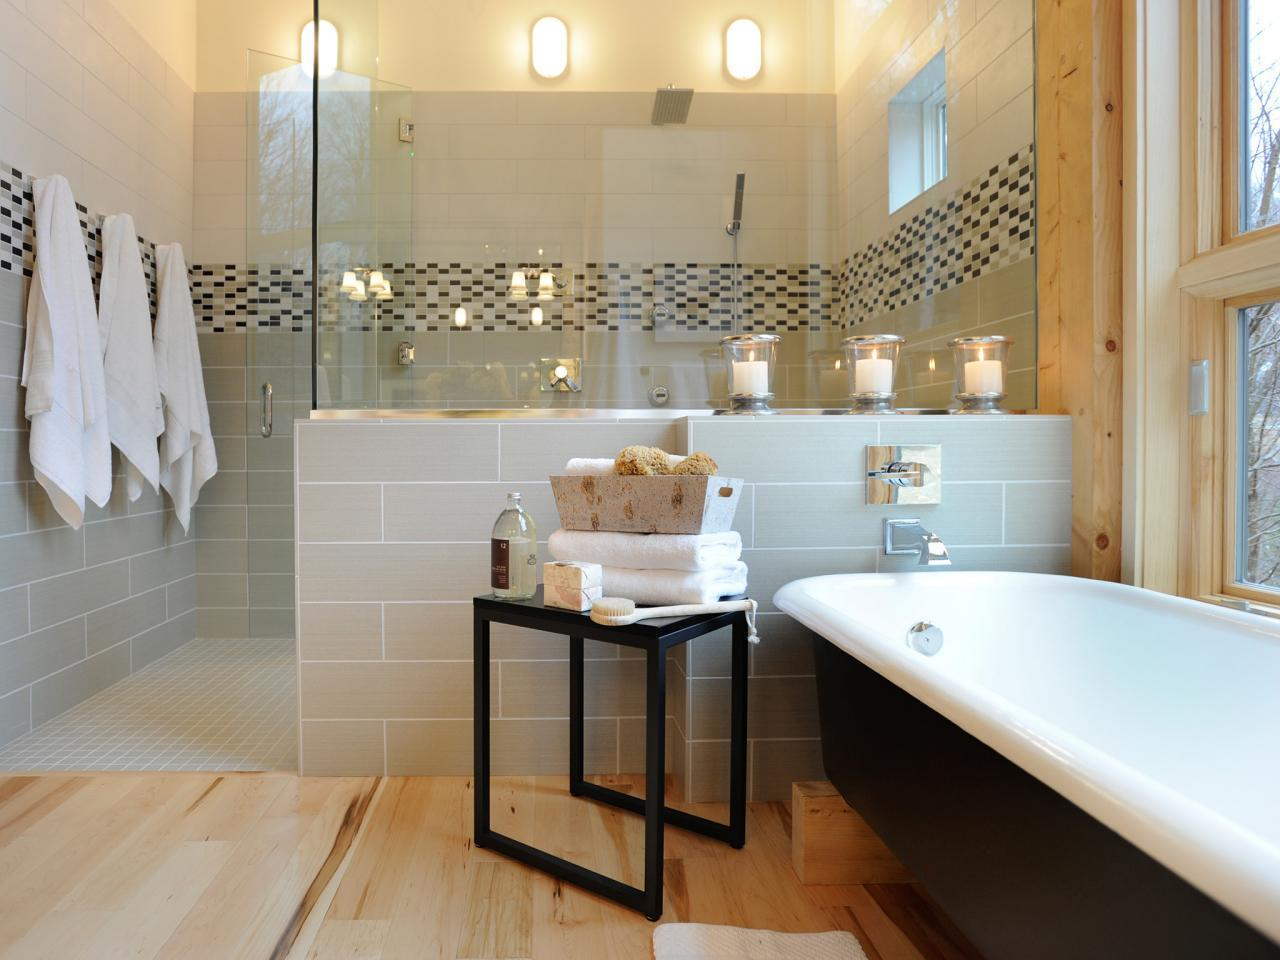 spa-bathroom-with-regard-to-spa-bathroom-makeover-photos-bathroom-ideas-amp-designs-hgtv